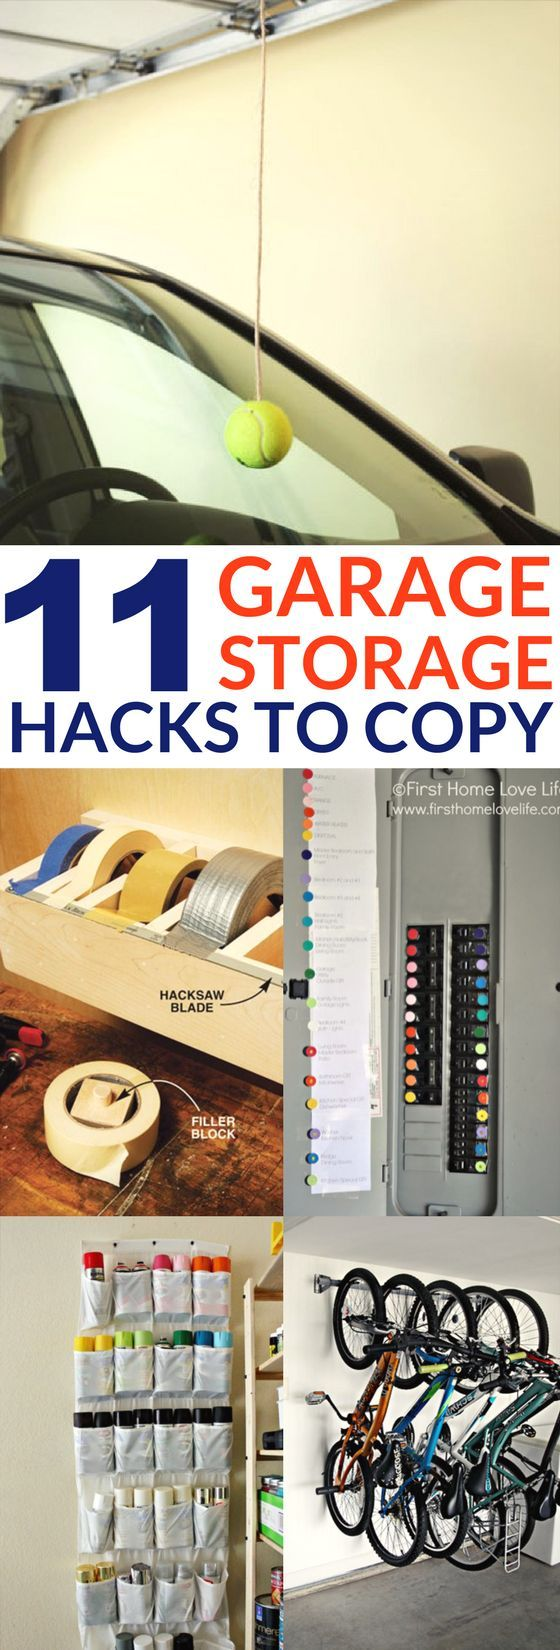 Garage Hacks: 11 Ways to Organize With DIY Projects ...